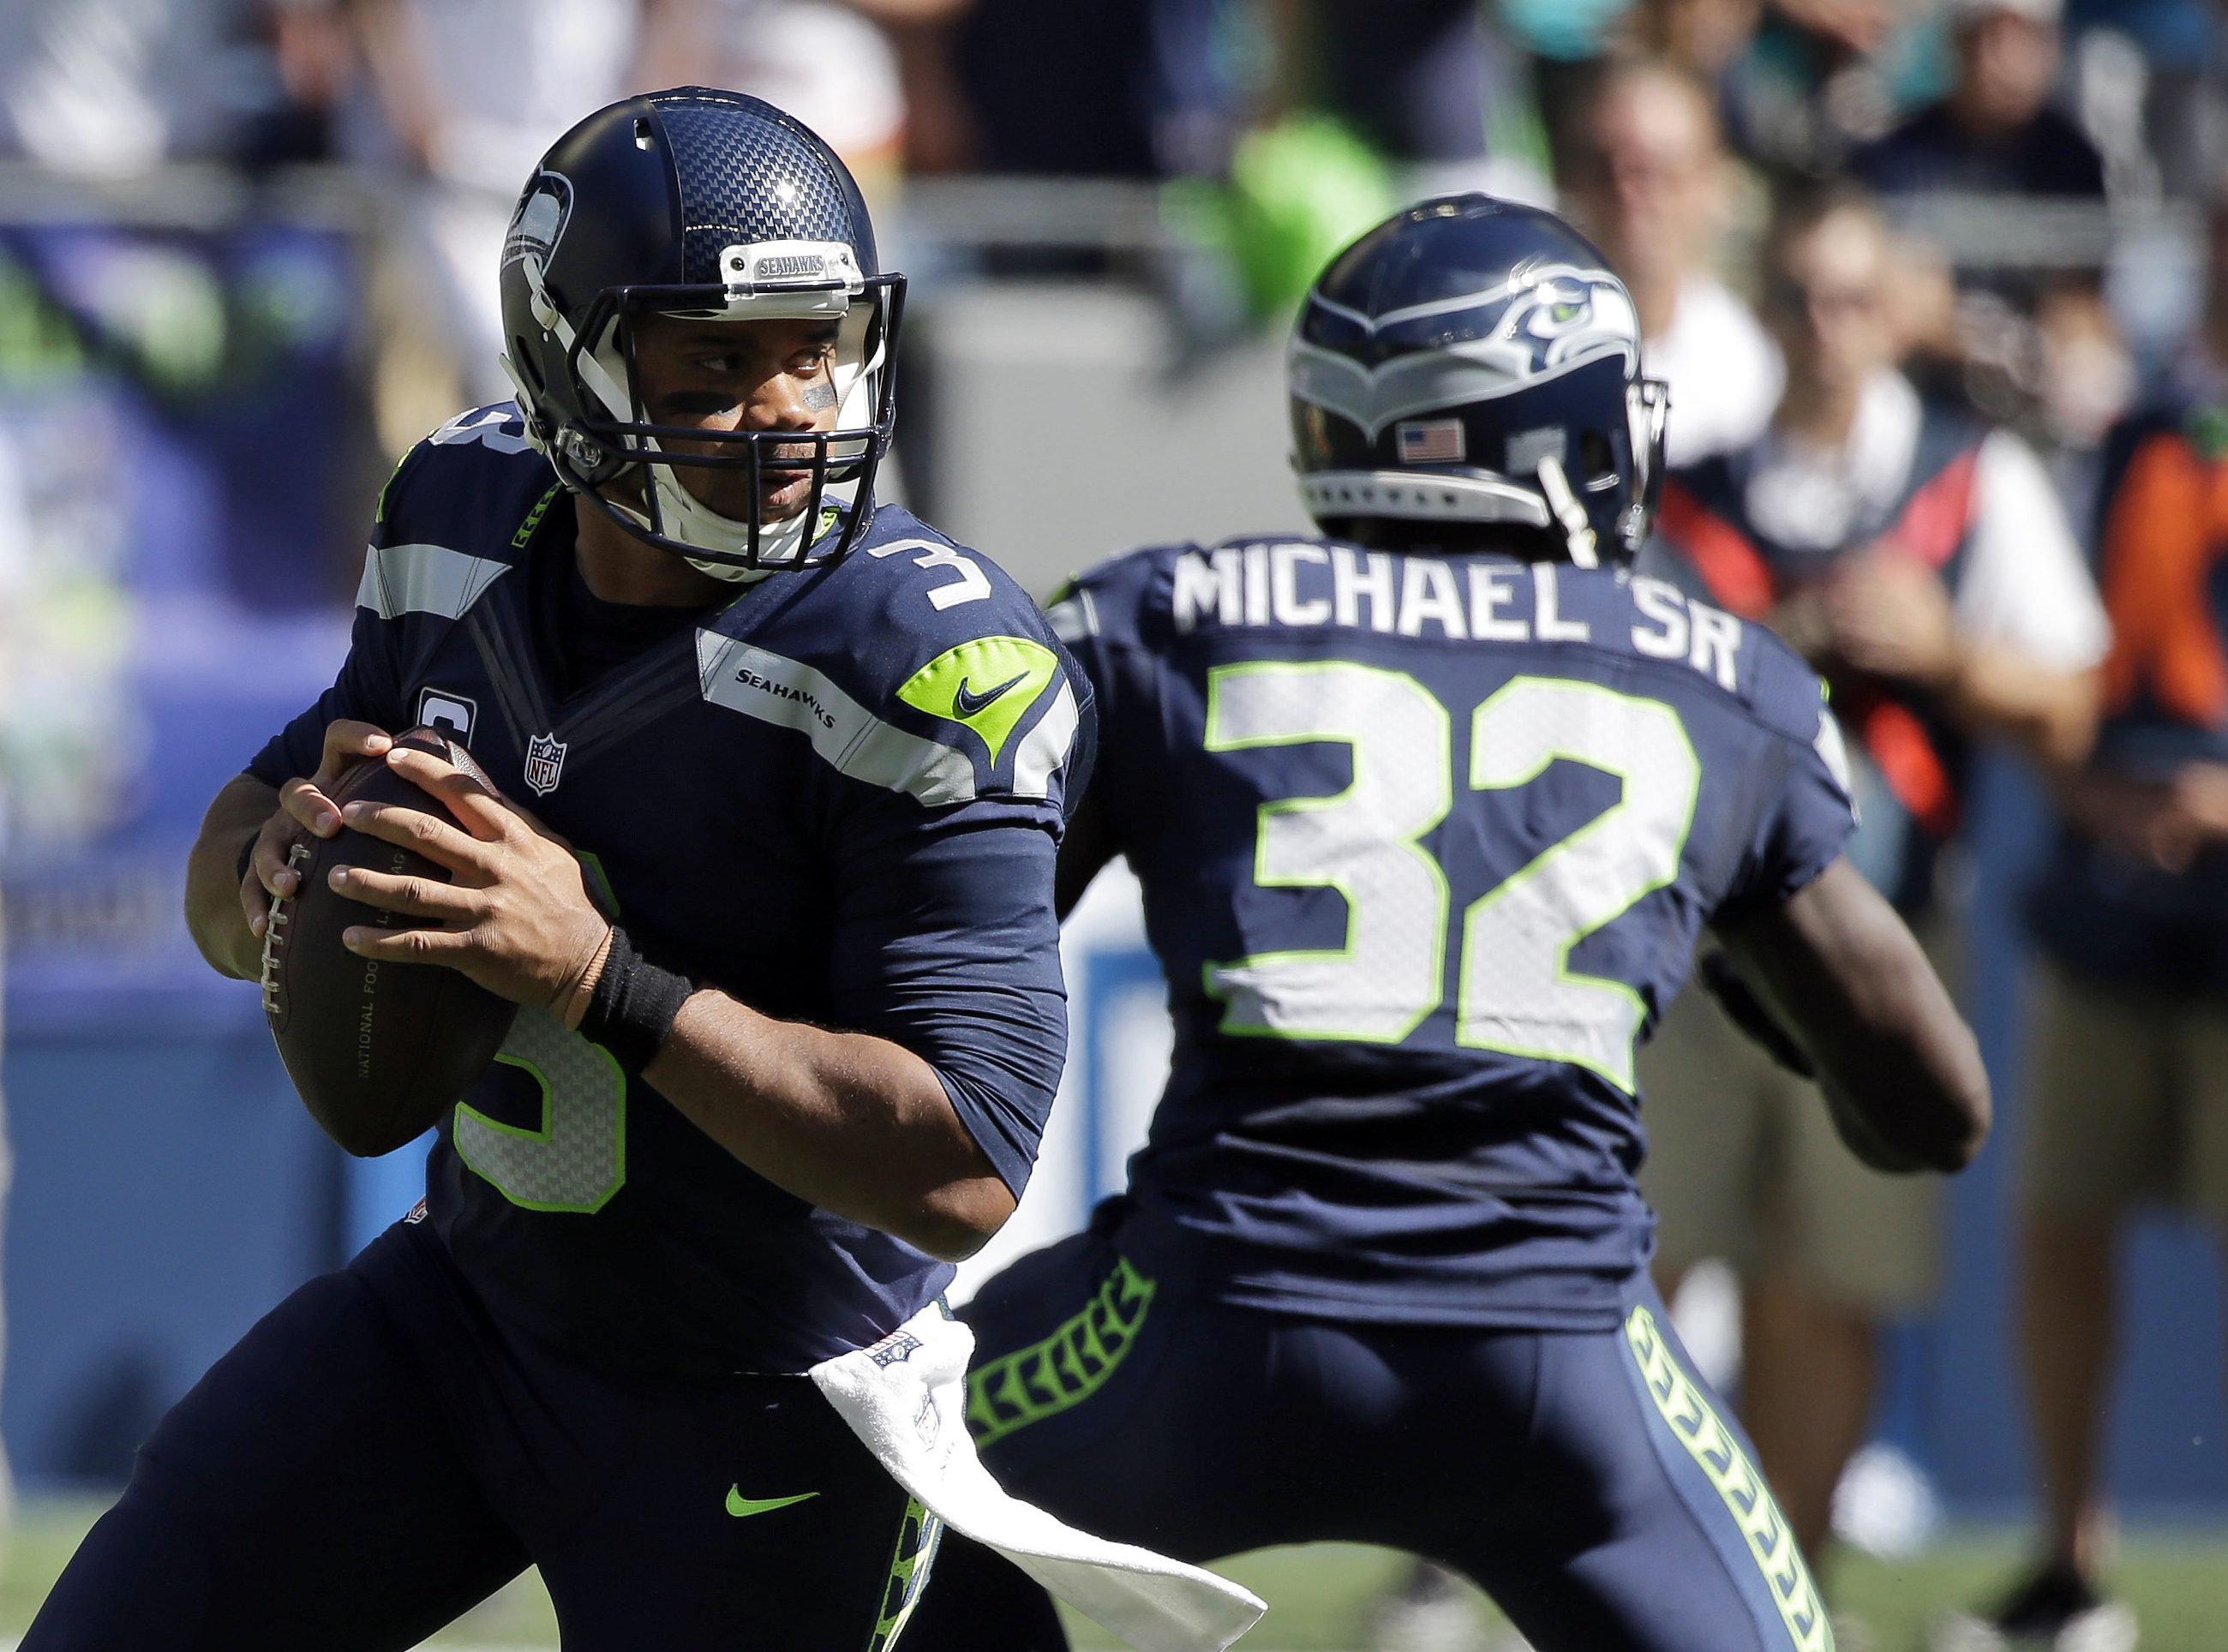 FILE - In this Sunday, Sept. 11, 2016, file photo, Seattle Seahawks quarterback Russell Wilson, left, drops to pass against the Miami Dolphins in the first half of an NFL football game in Seattle. Wilson insists he'll be ready to play against the Los Ange